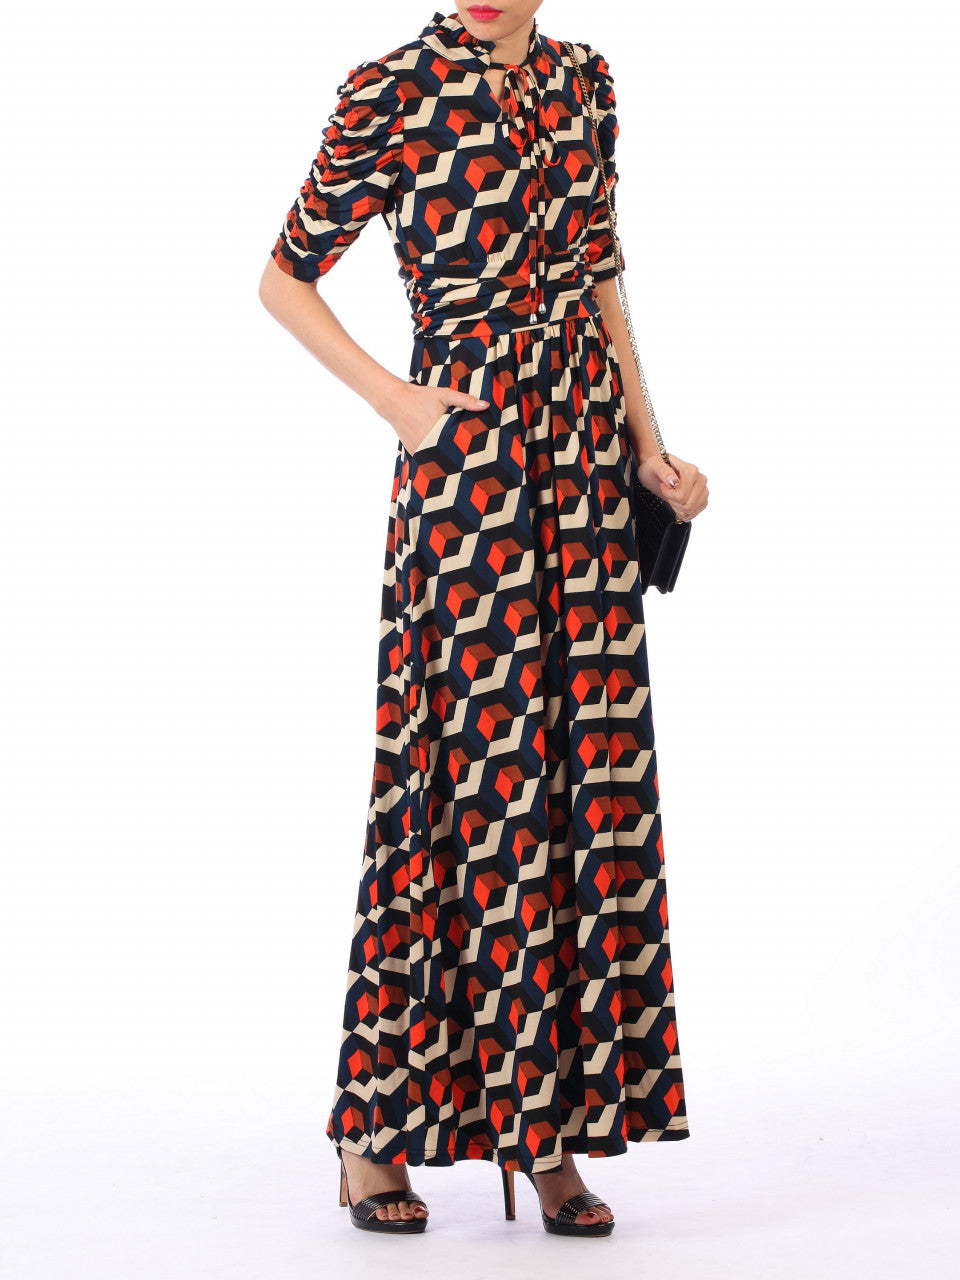 21c6099438 Load image into Gallery viewer, Jolie Moi Tie Collar Maxi Dress, Navy Geo  ...